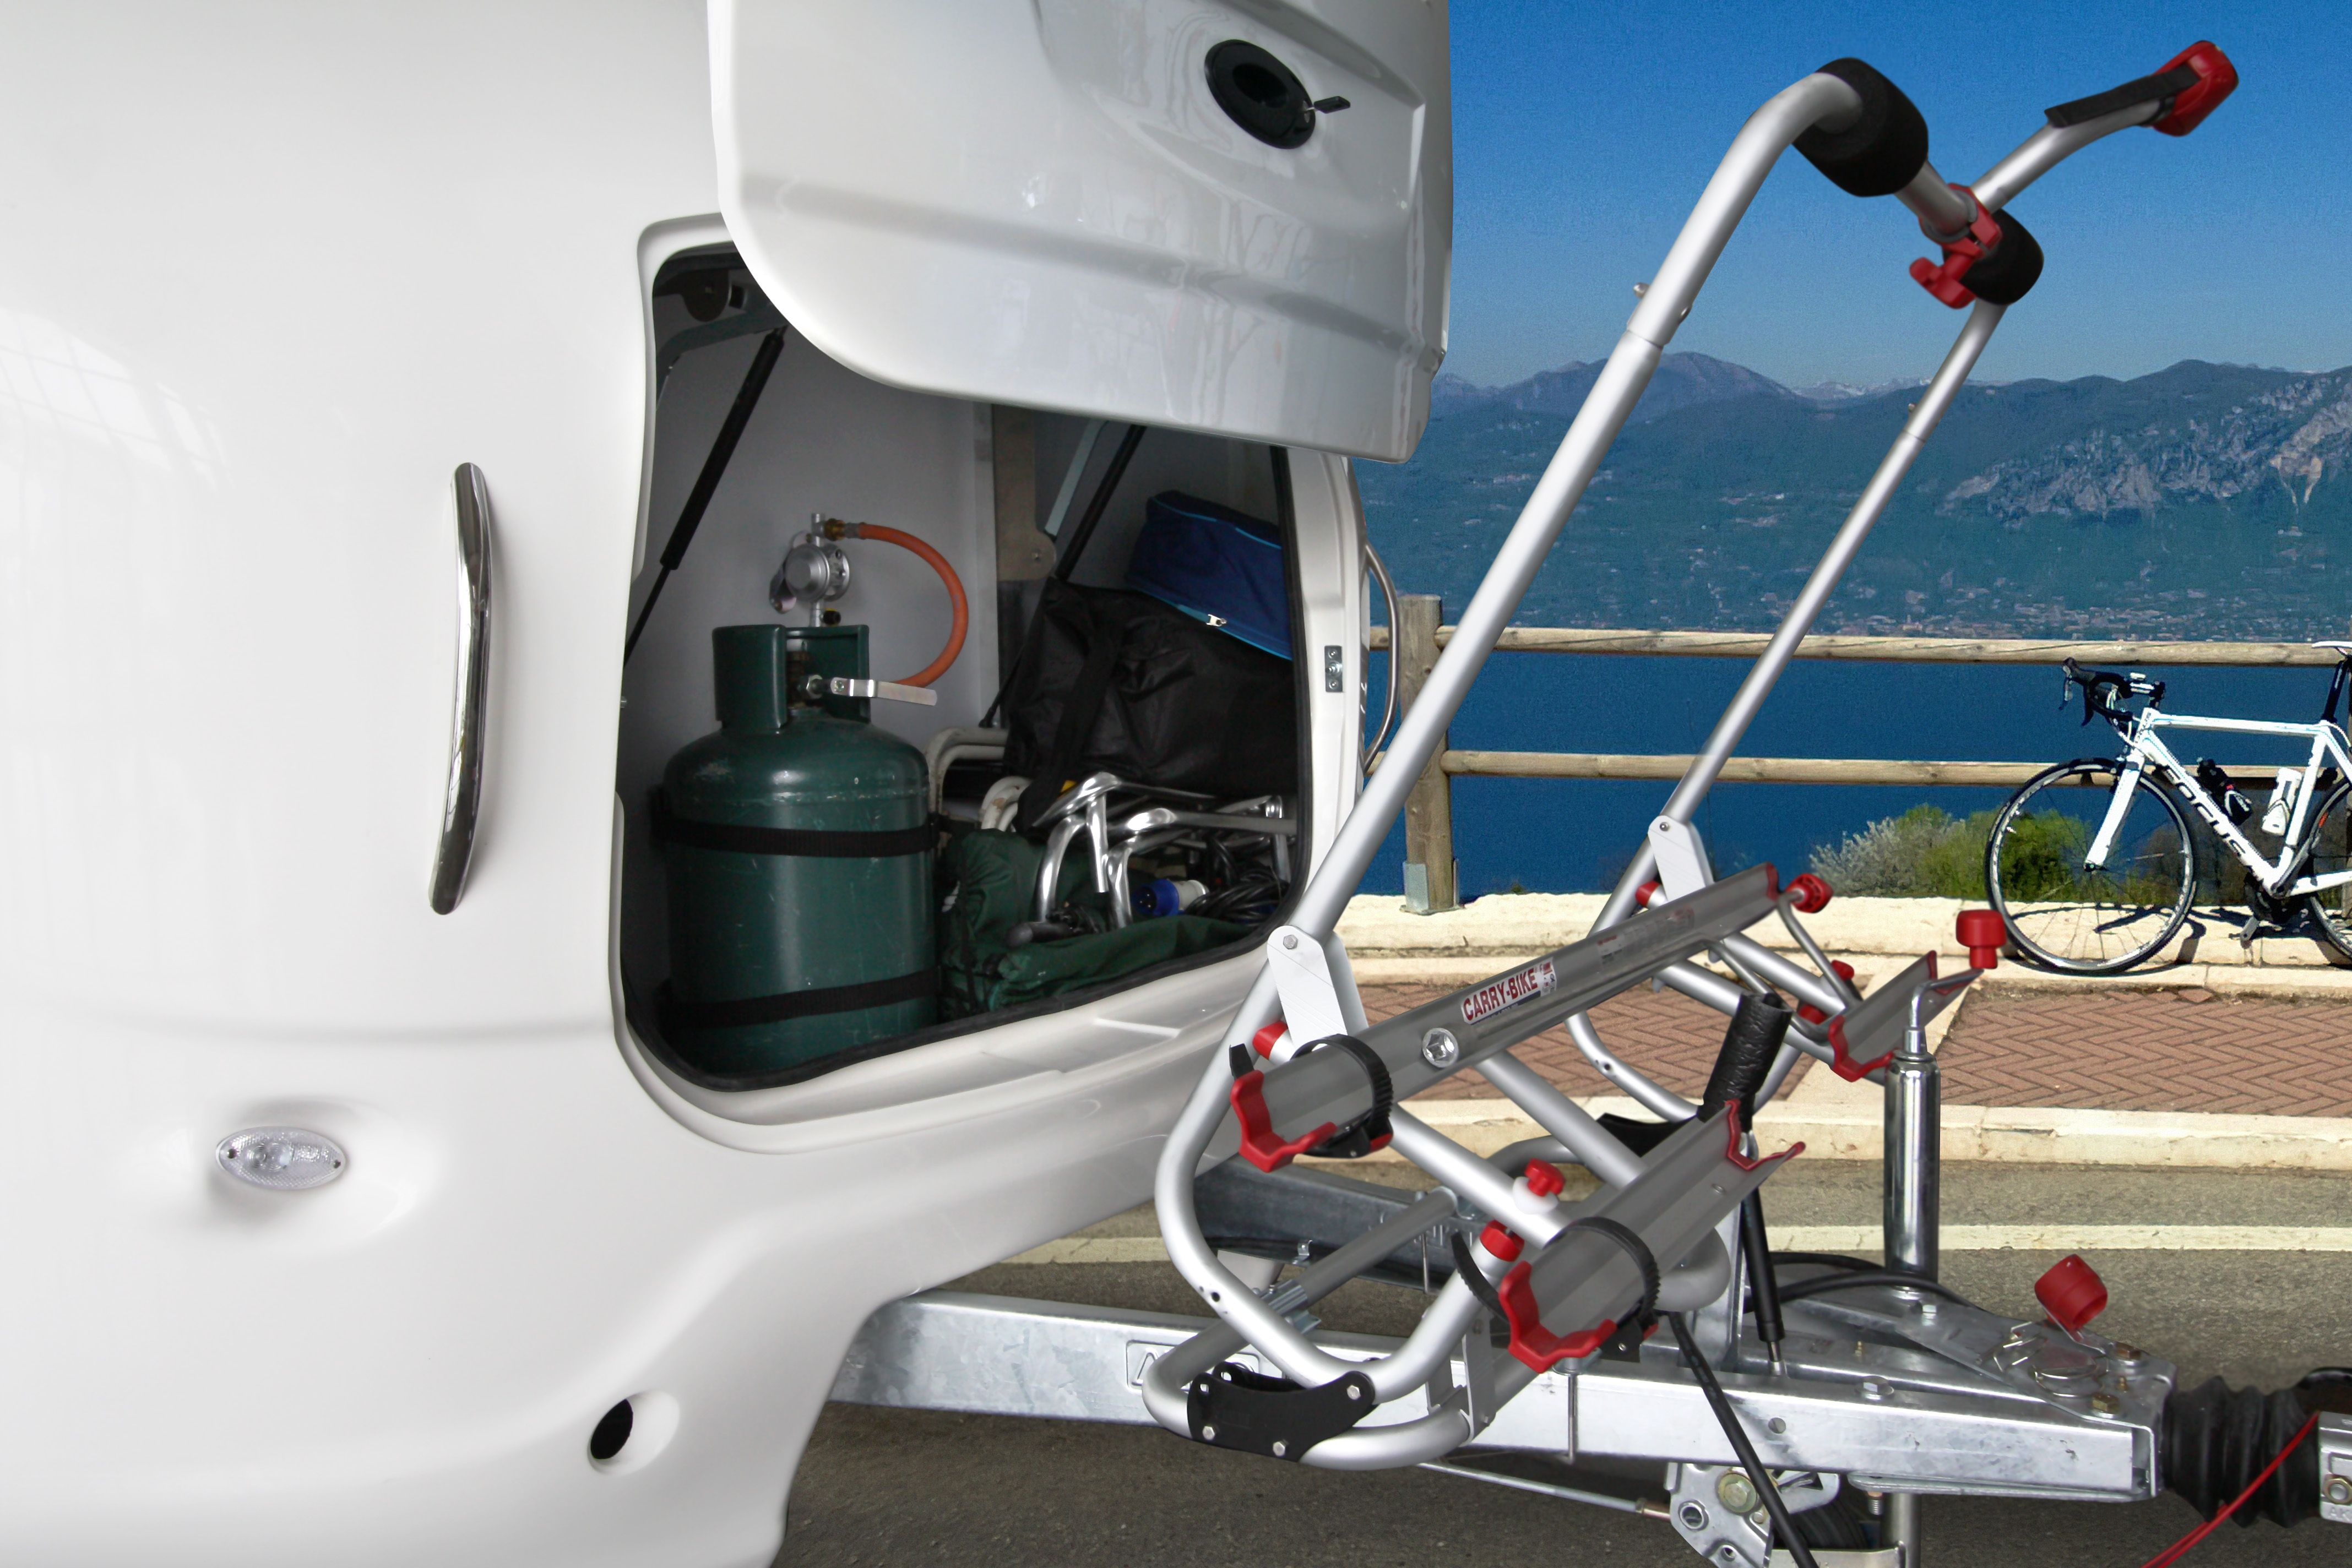 Rookie 3.5 can be equipped with a bikerack on the towbar